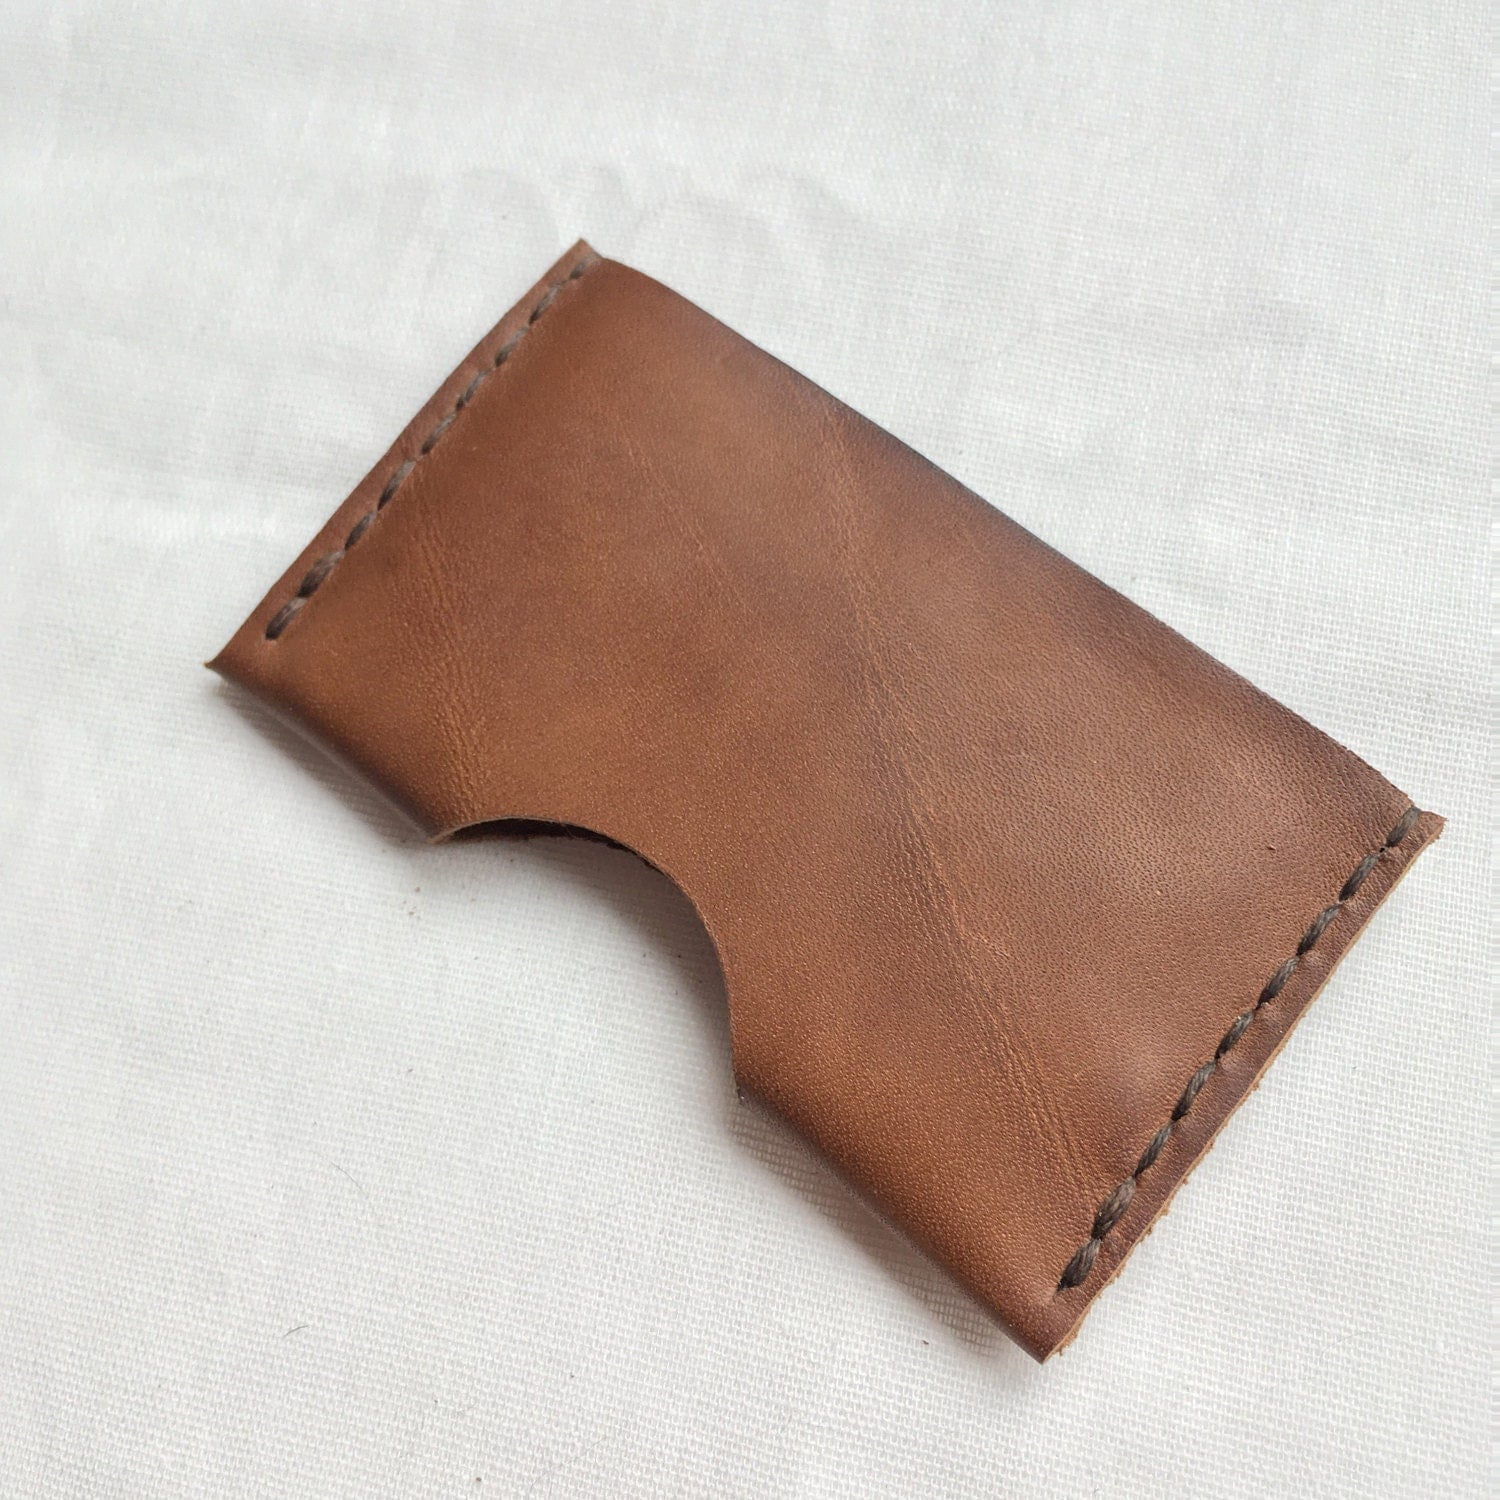 Leather card holder minimalist wallet leather card sleeve leather card holder minimalist wallet leather card sleeve business card holder minimalist magicingreecefo Image collections